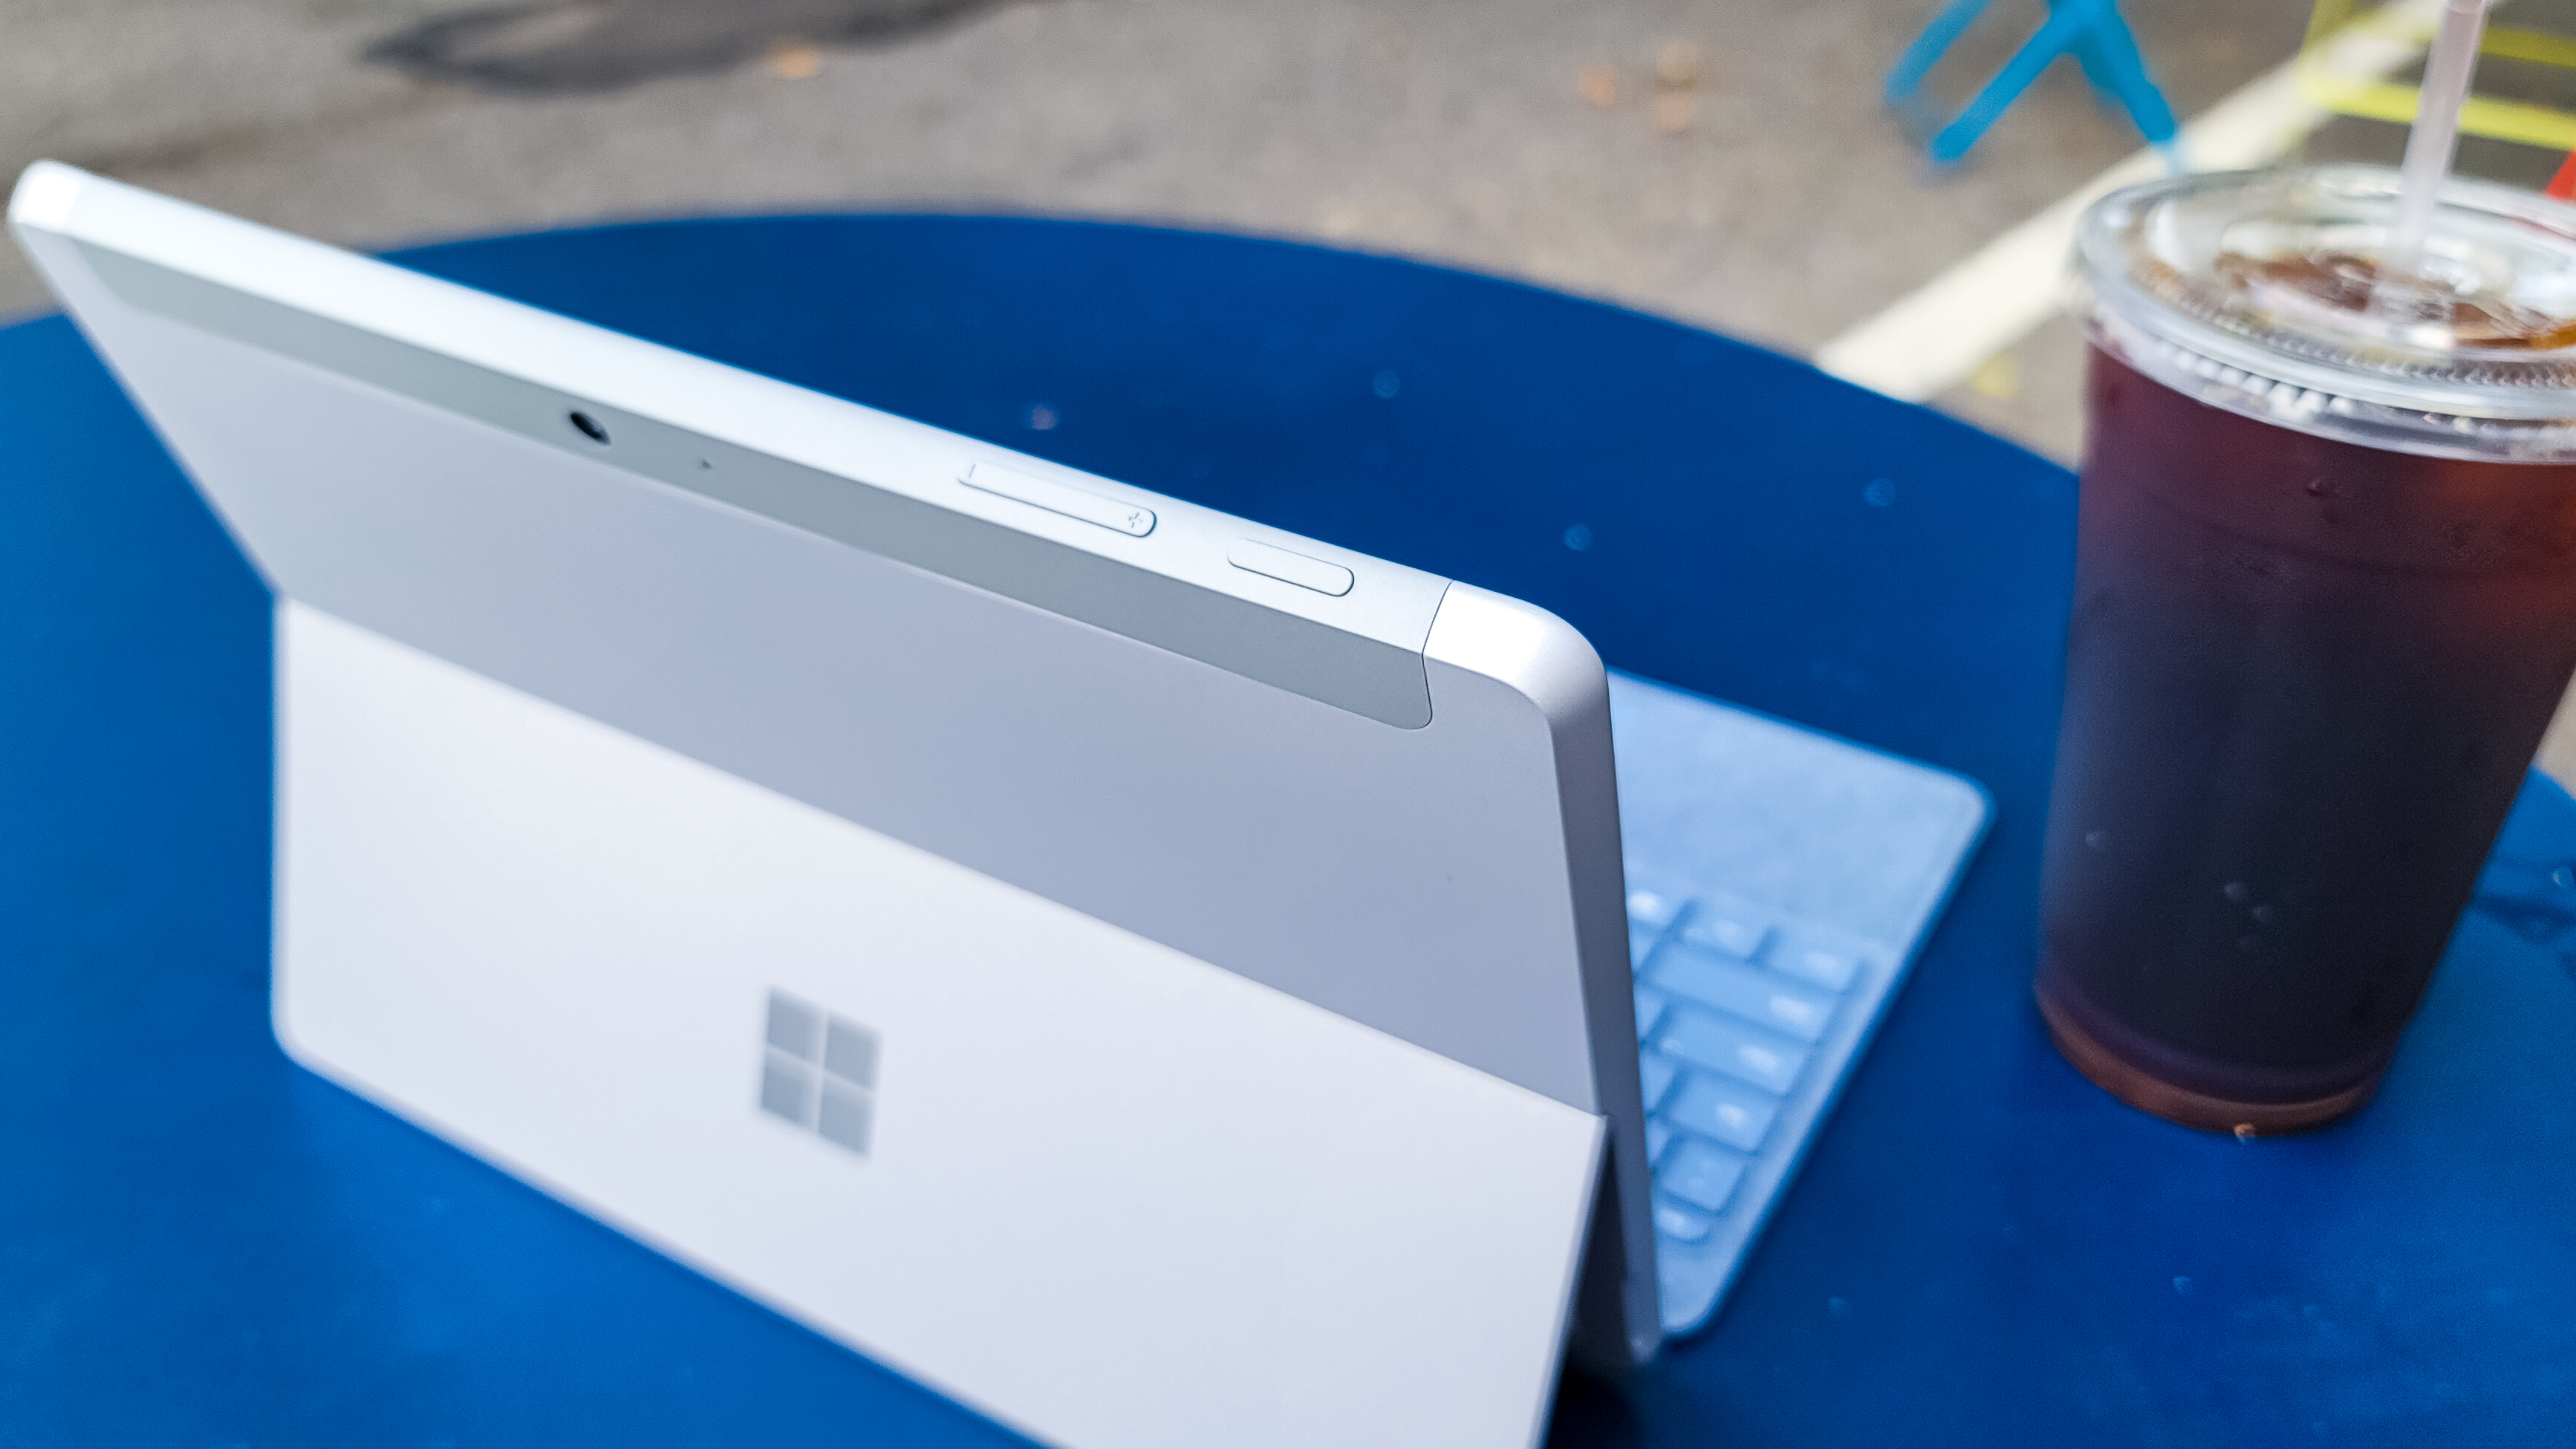 Surface Go 3 on a blue table outdoors next to a cup of iced coffee